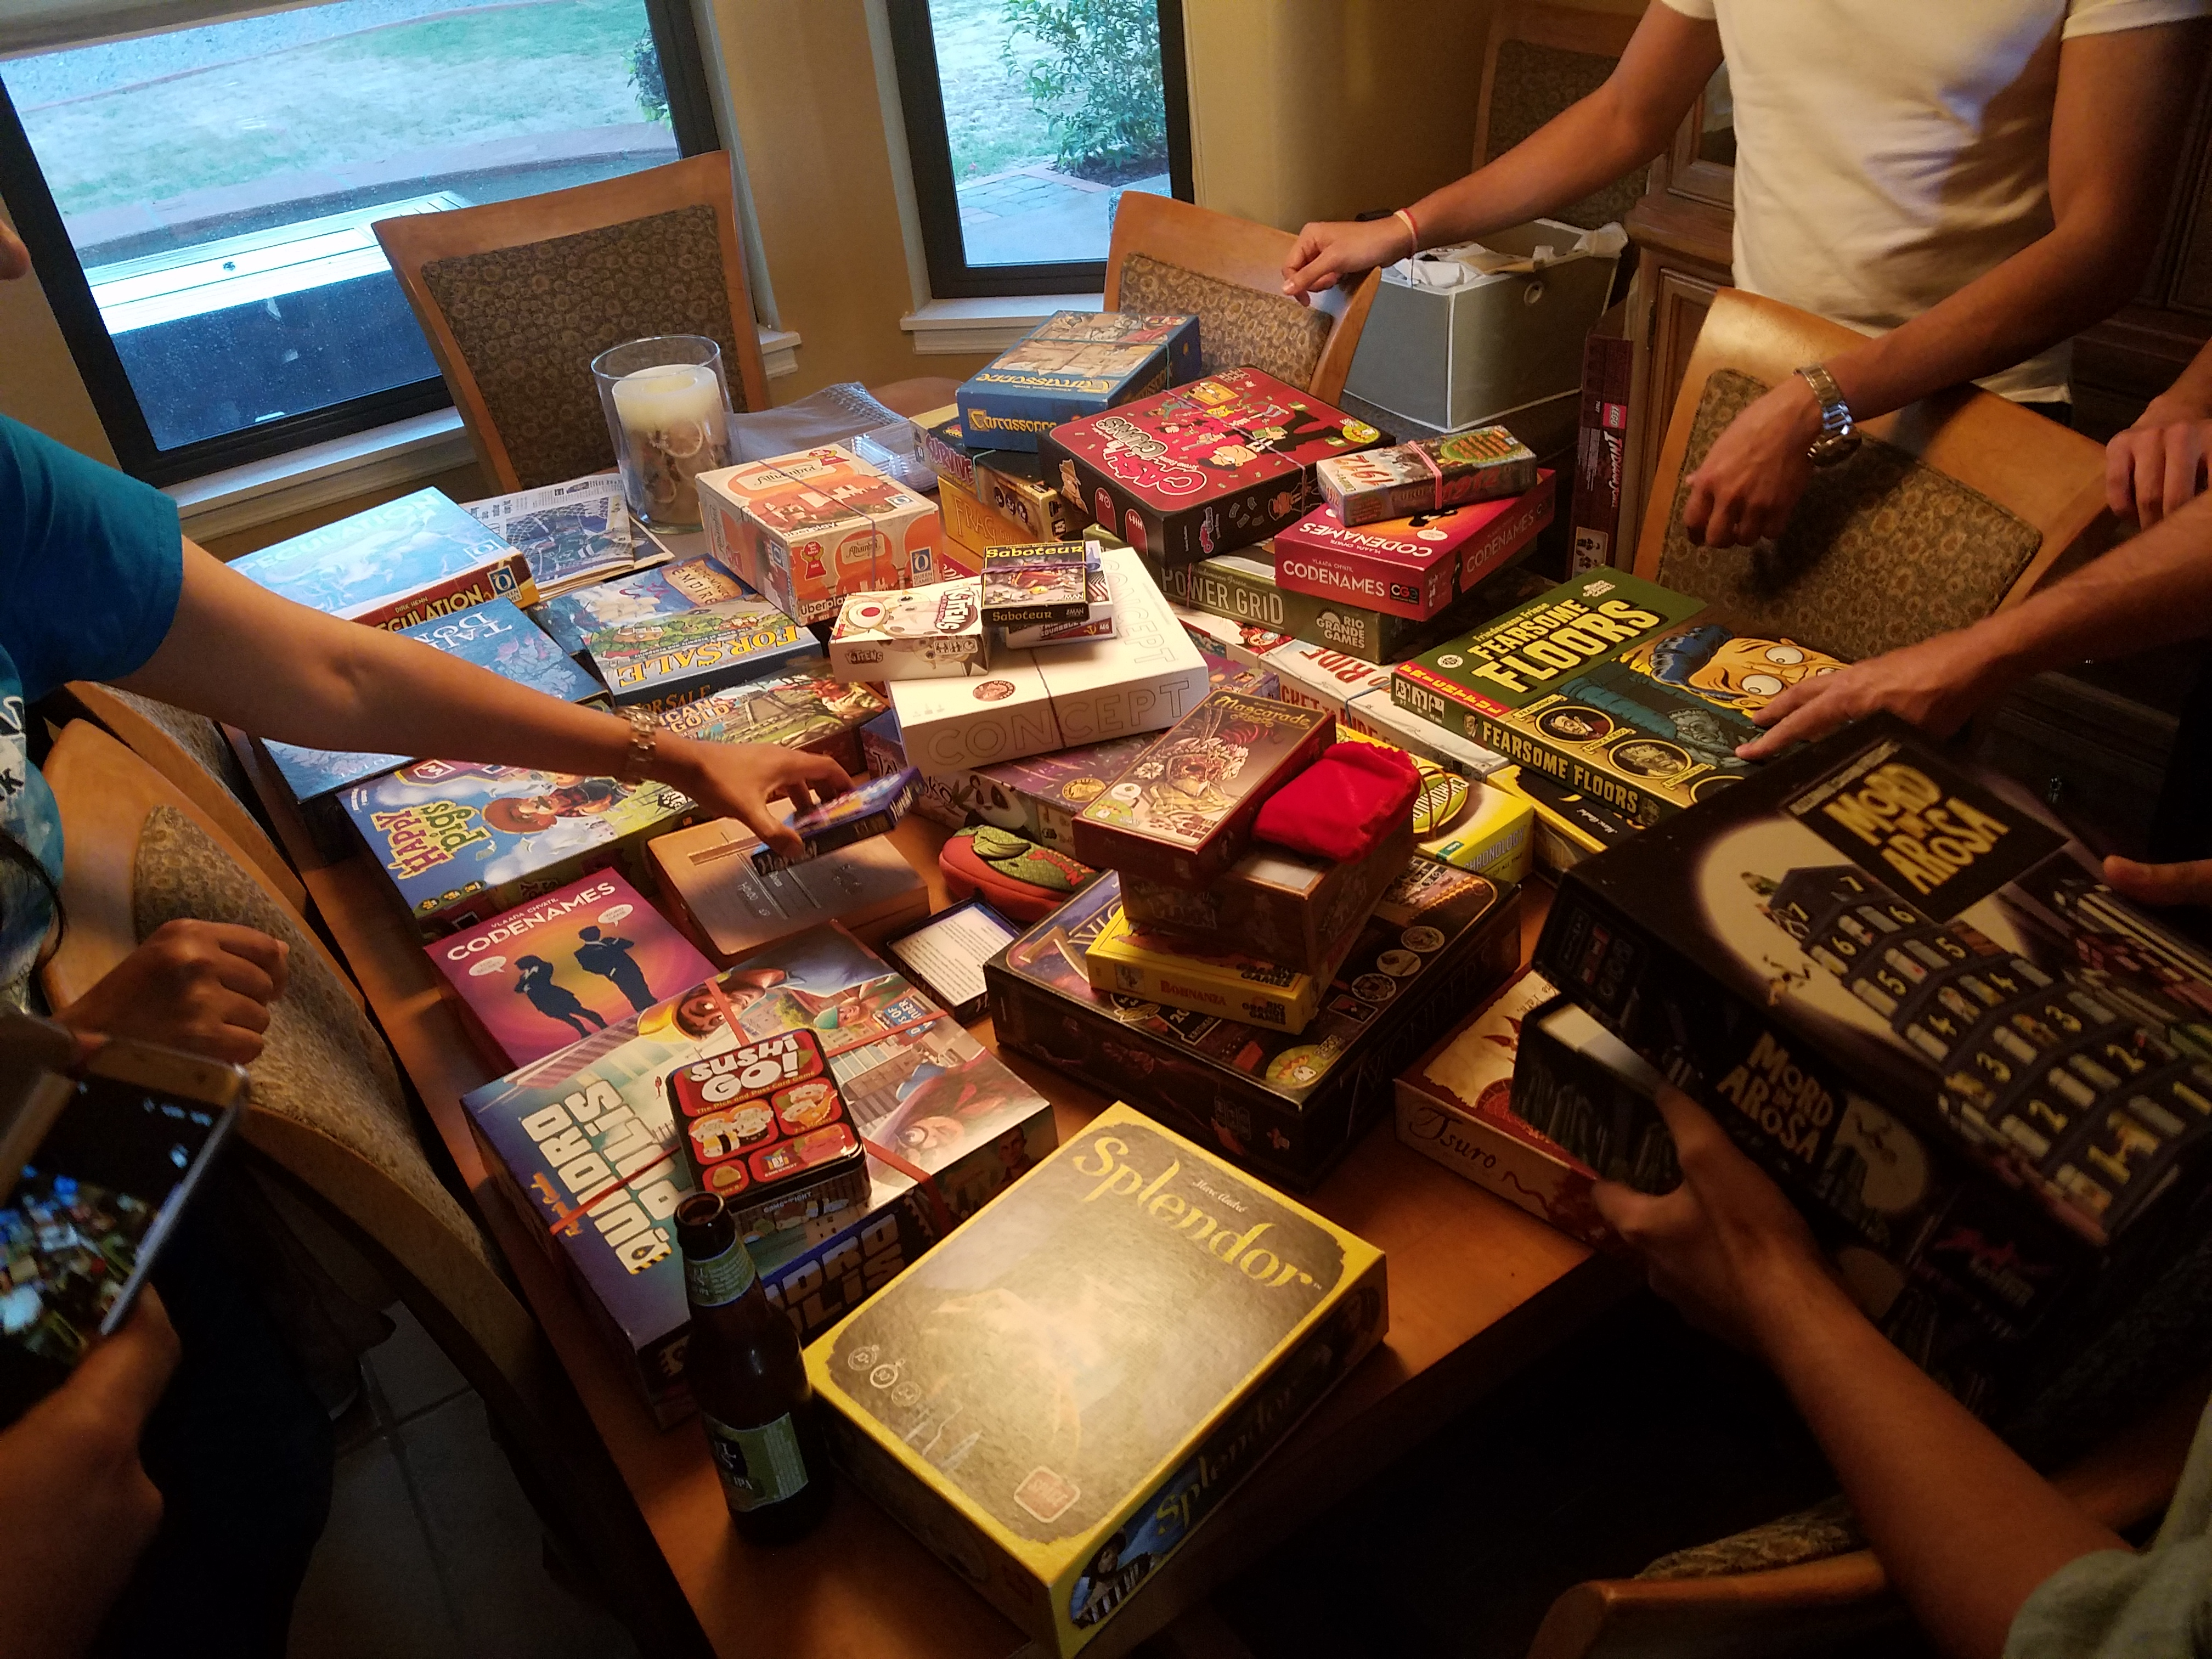 My Board Gamer Friends And I Laid Out Our Games For The Party On The